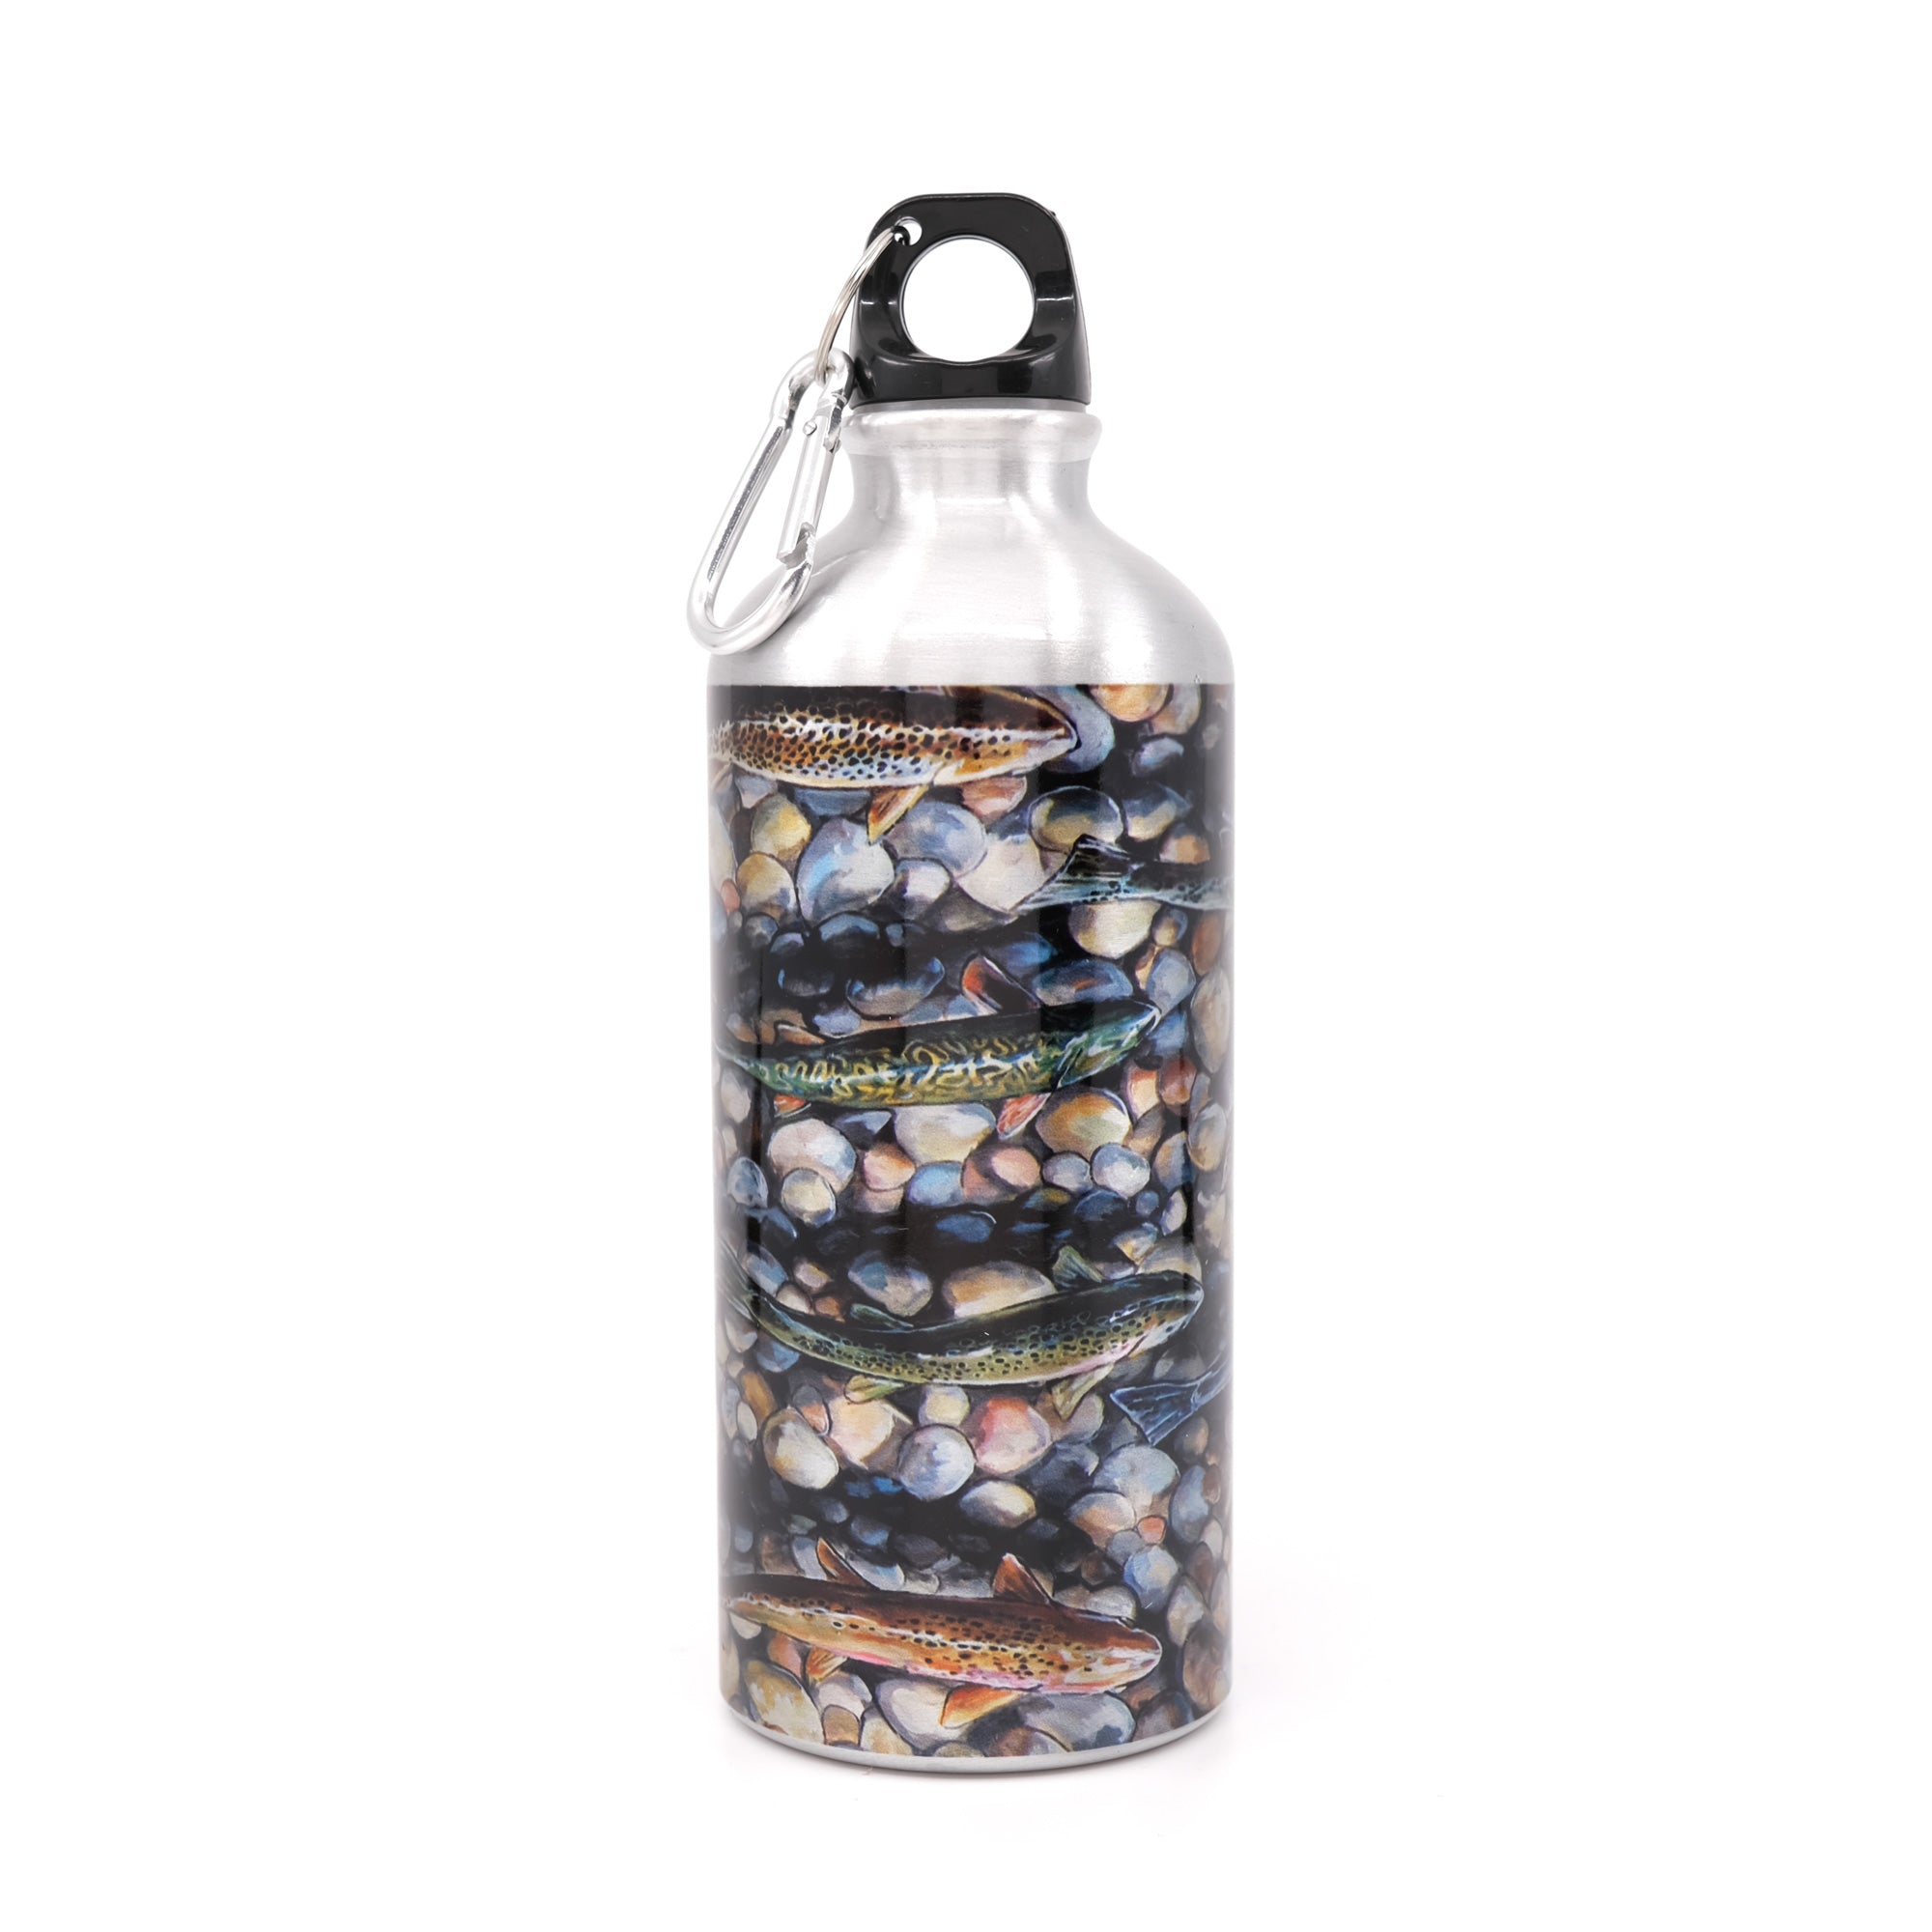 MFC Water Bottle - Udesen's Trout Dreams